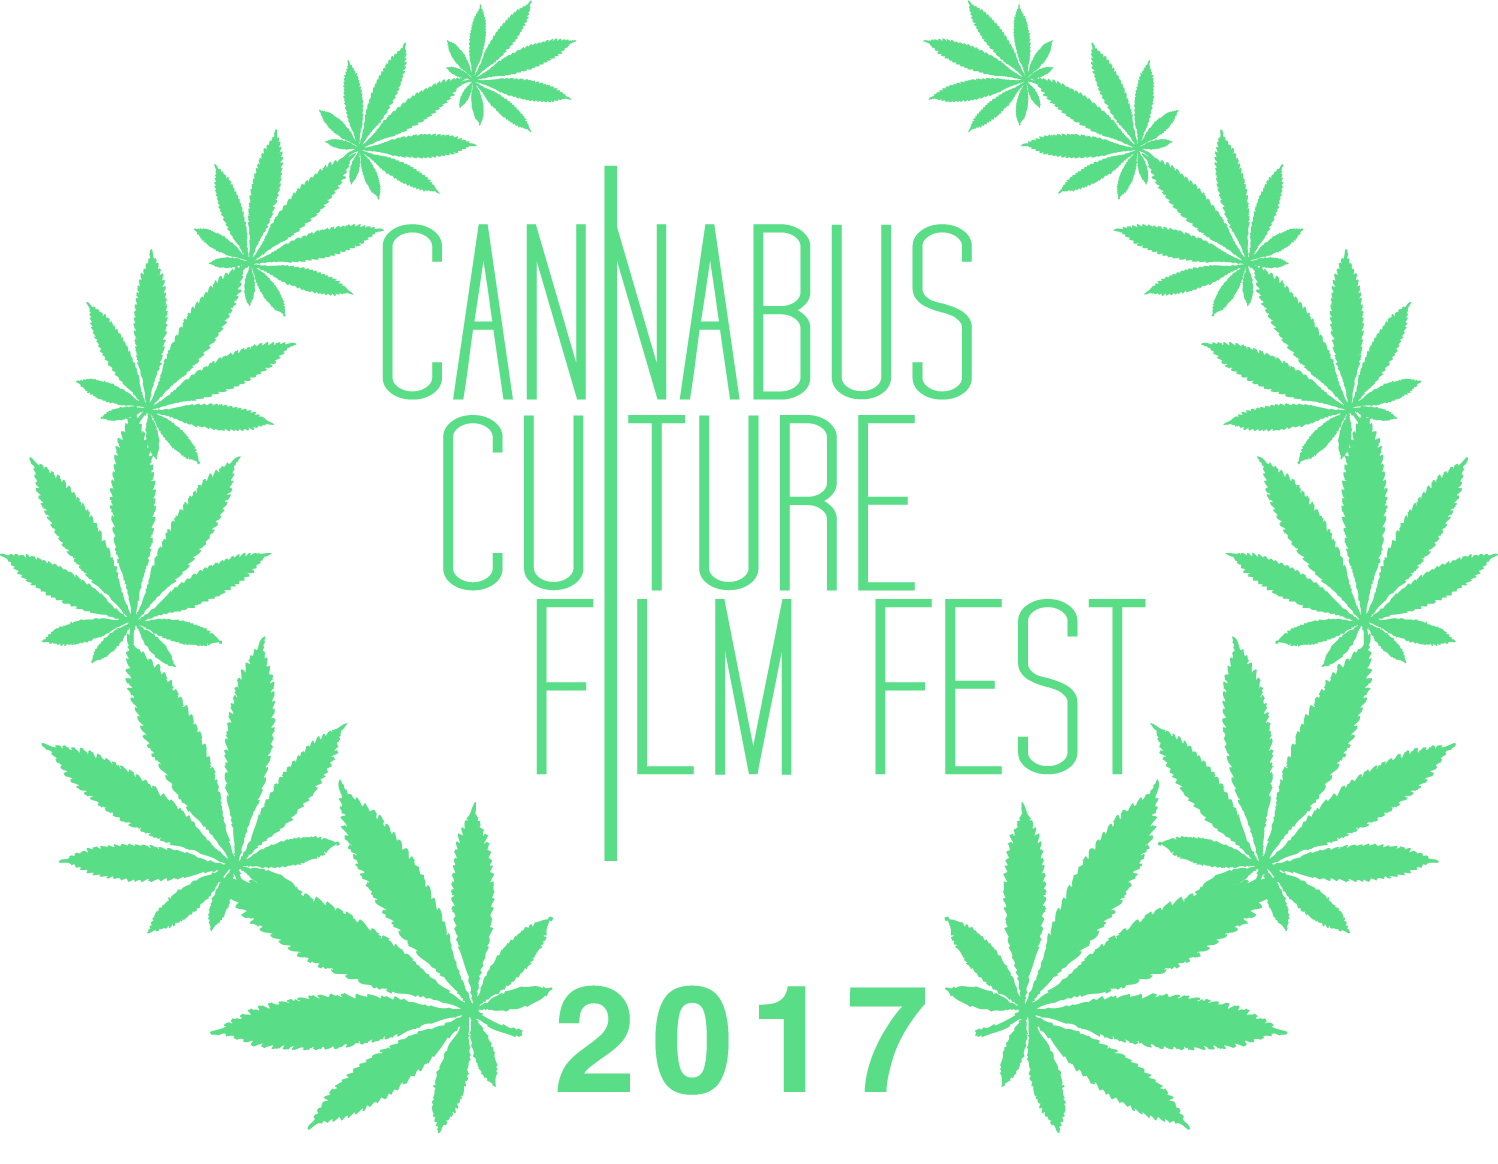 CannaBus Culture Film Festival